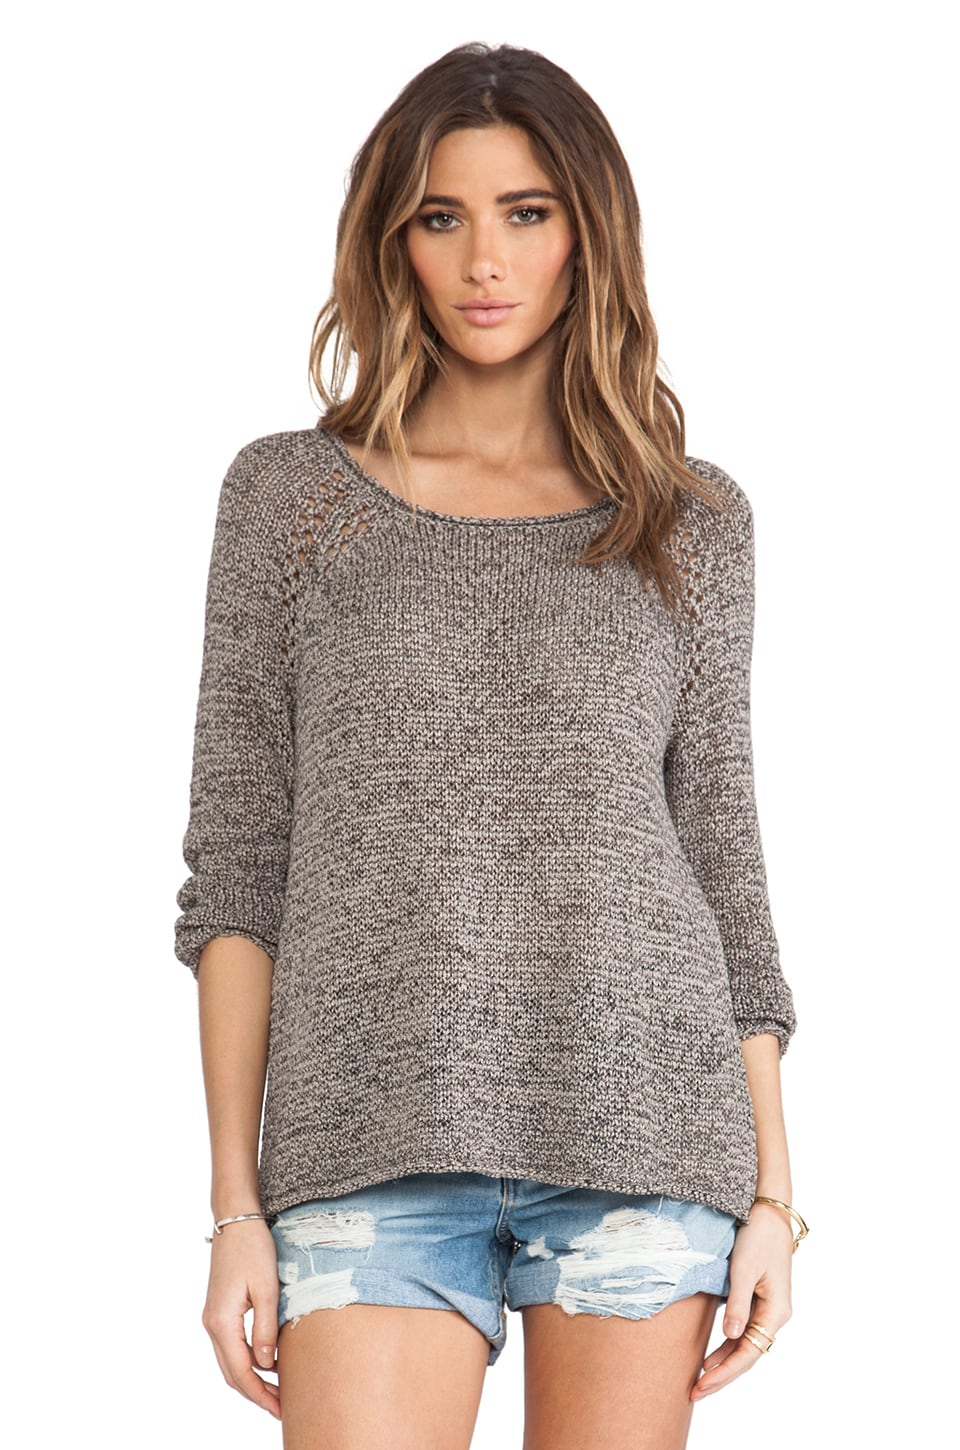 Soft Joie Duran Sweater in Limestone